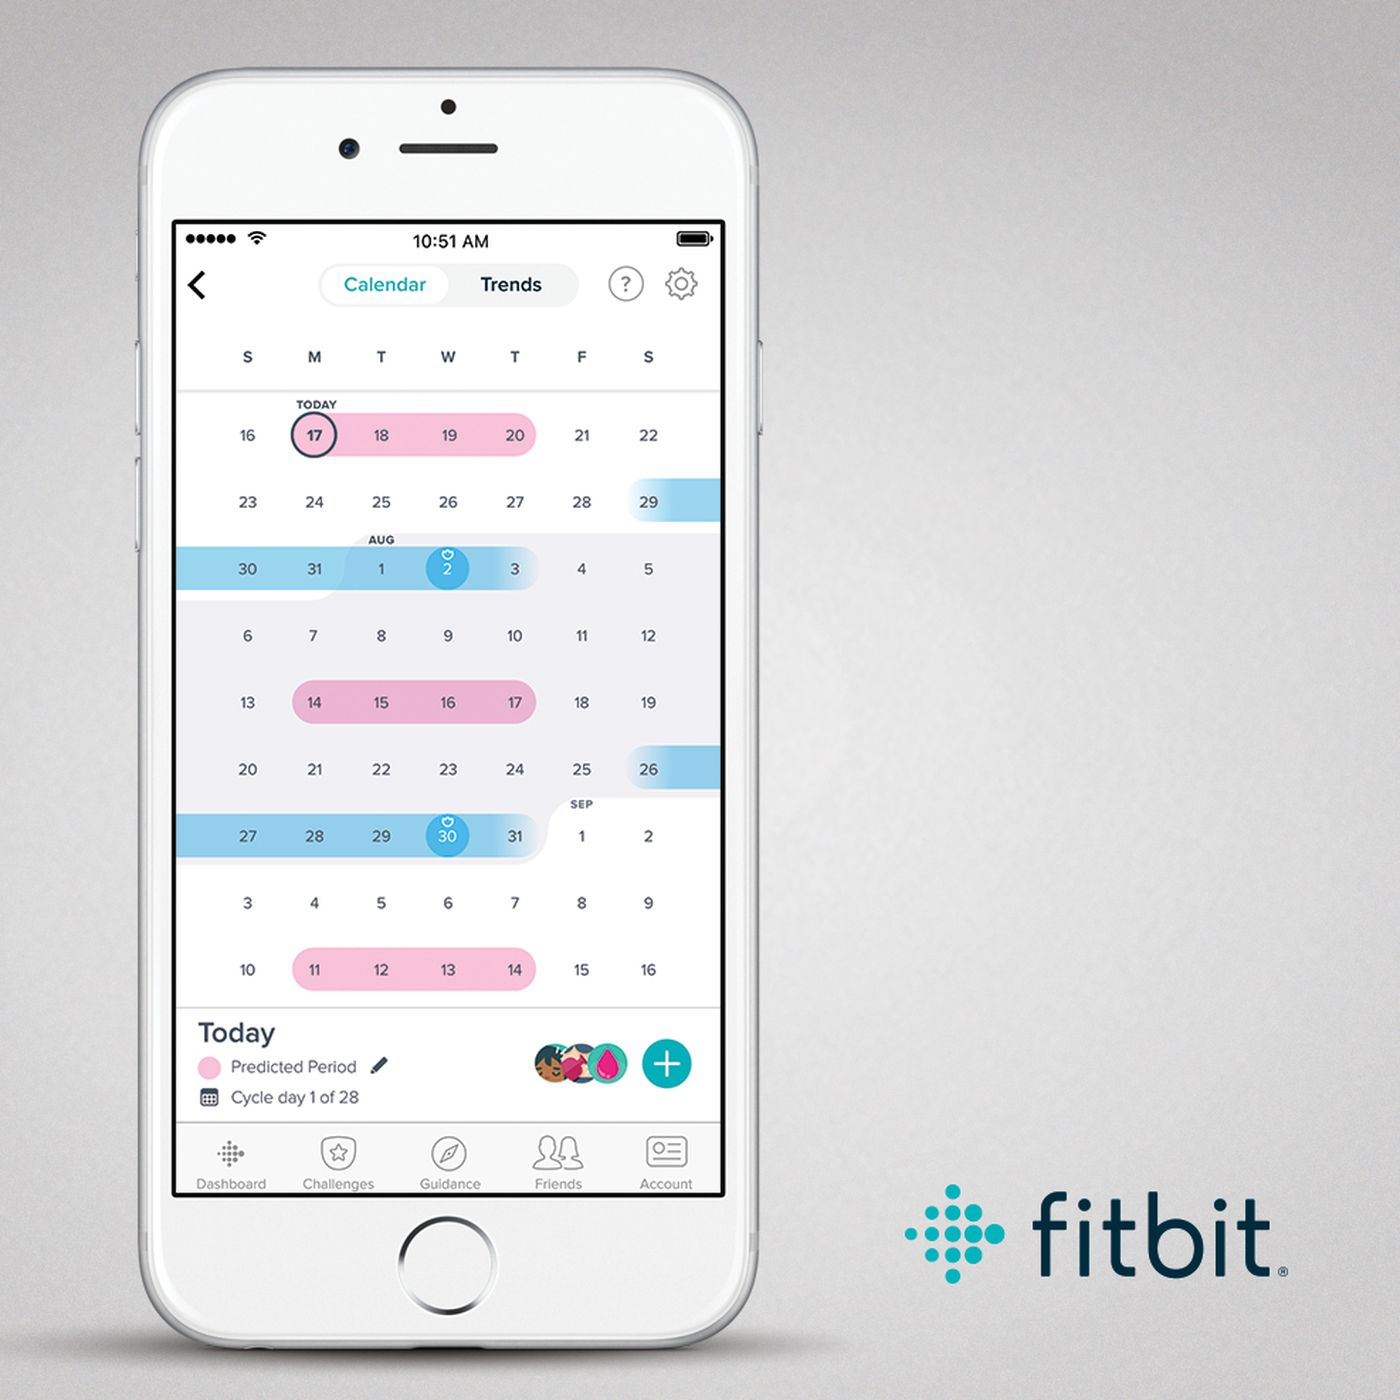 Fitbit will start tracking your period in an attempt to add more